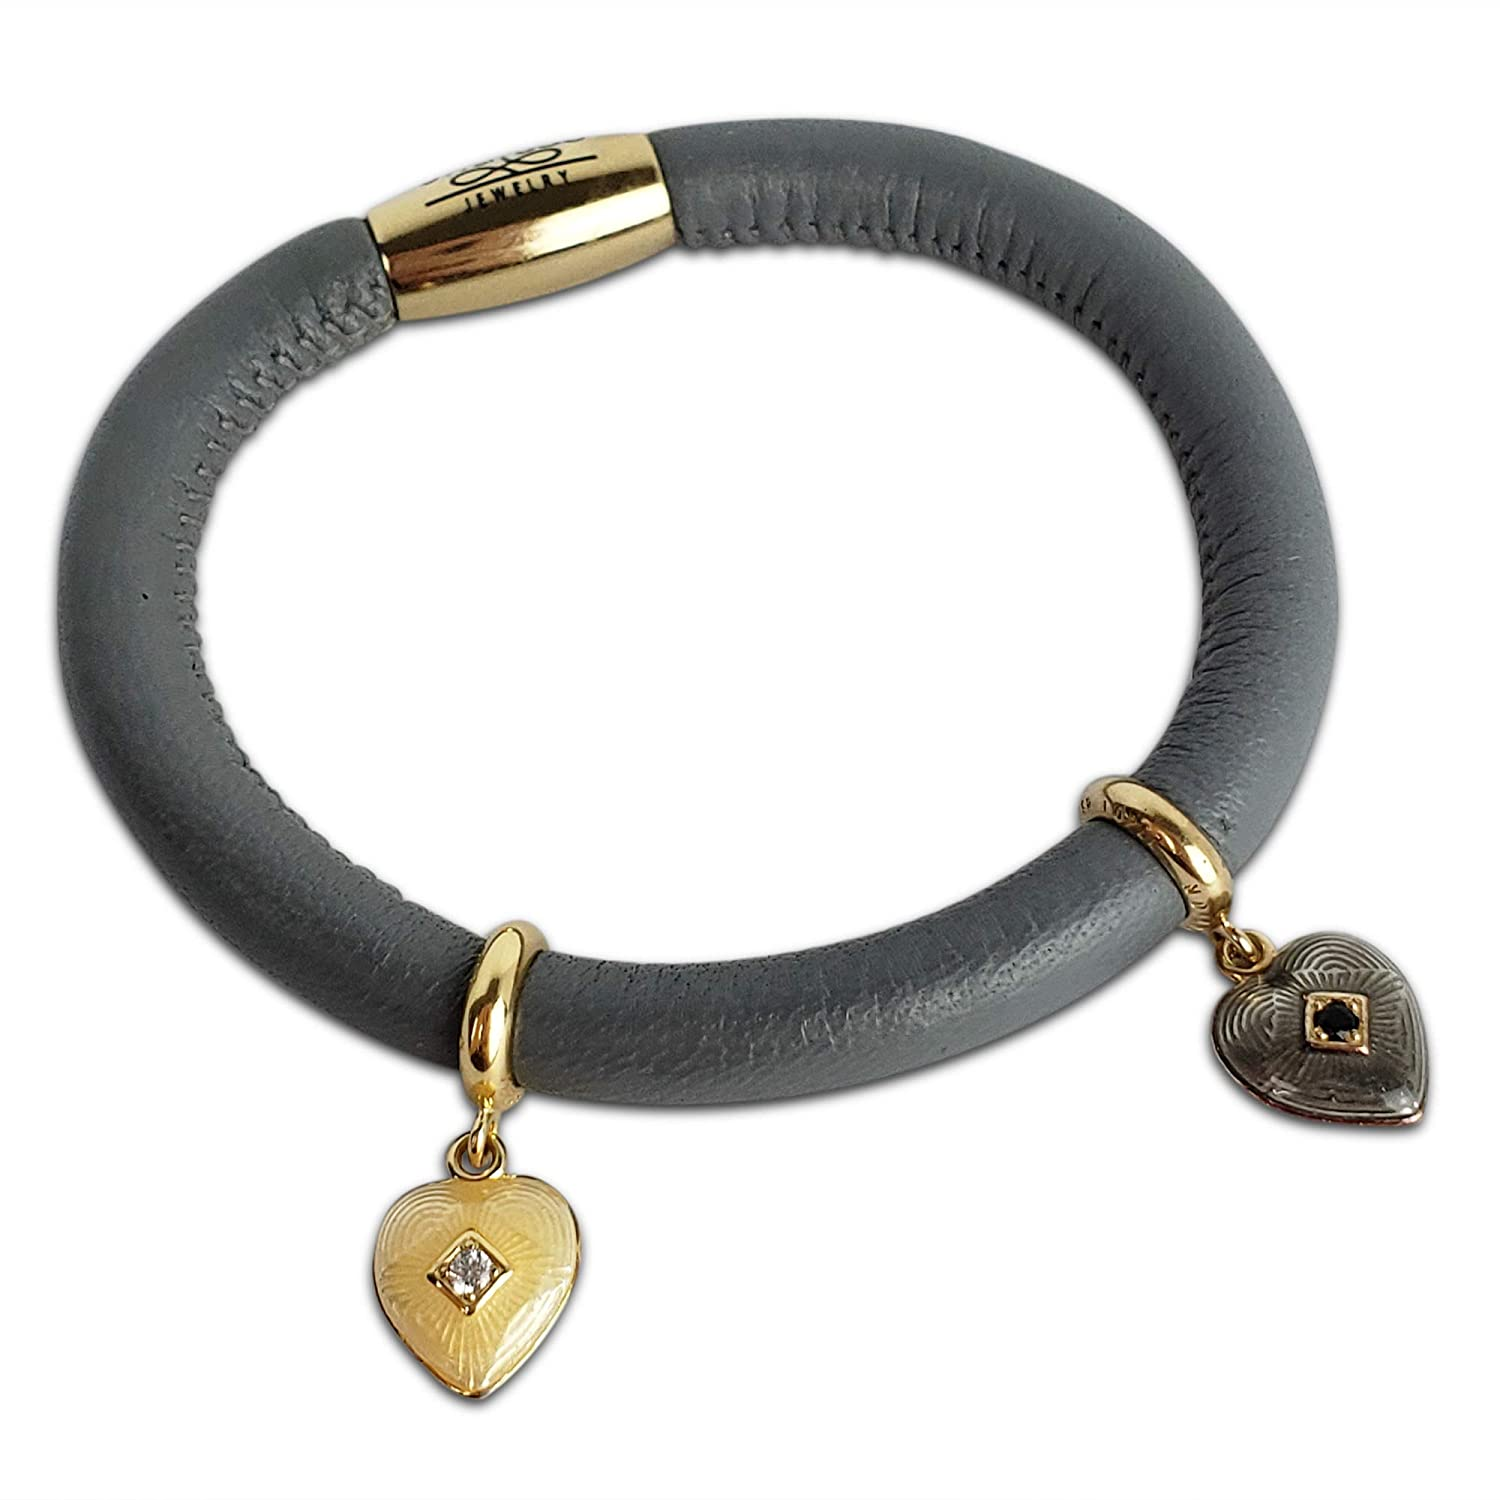 Endless Jewelry Wrap Leather Bracelet a Steel Lock Finish /& Charms Women Girls Birthday Valentines Christmas Anniversary Holiday Wrist Jewelry Magnetic Clasp